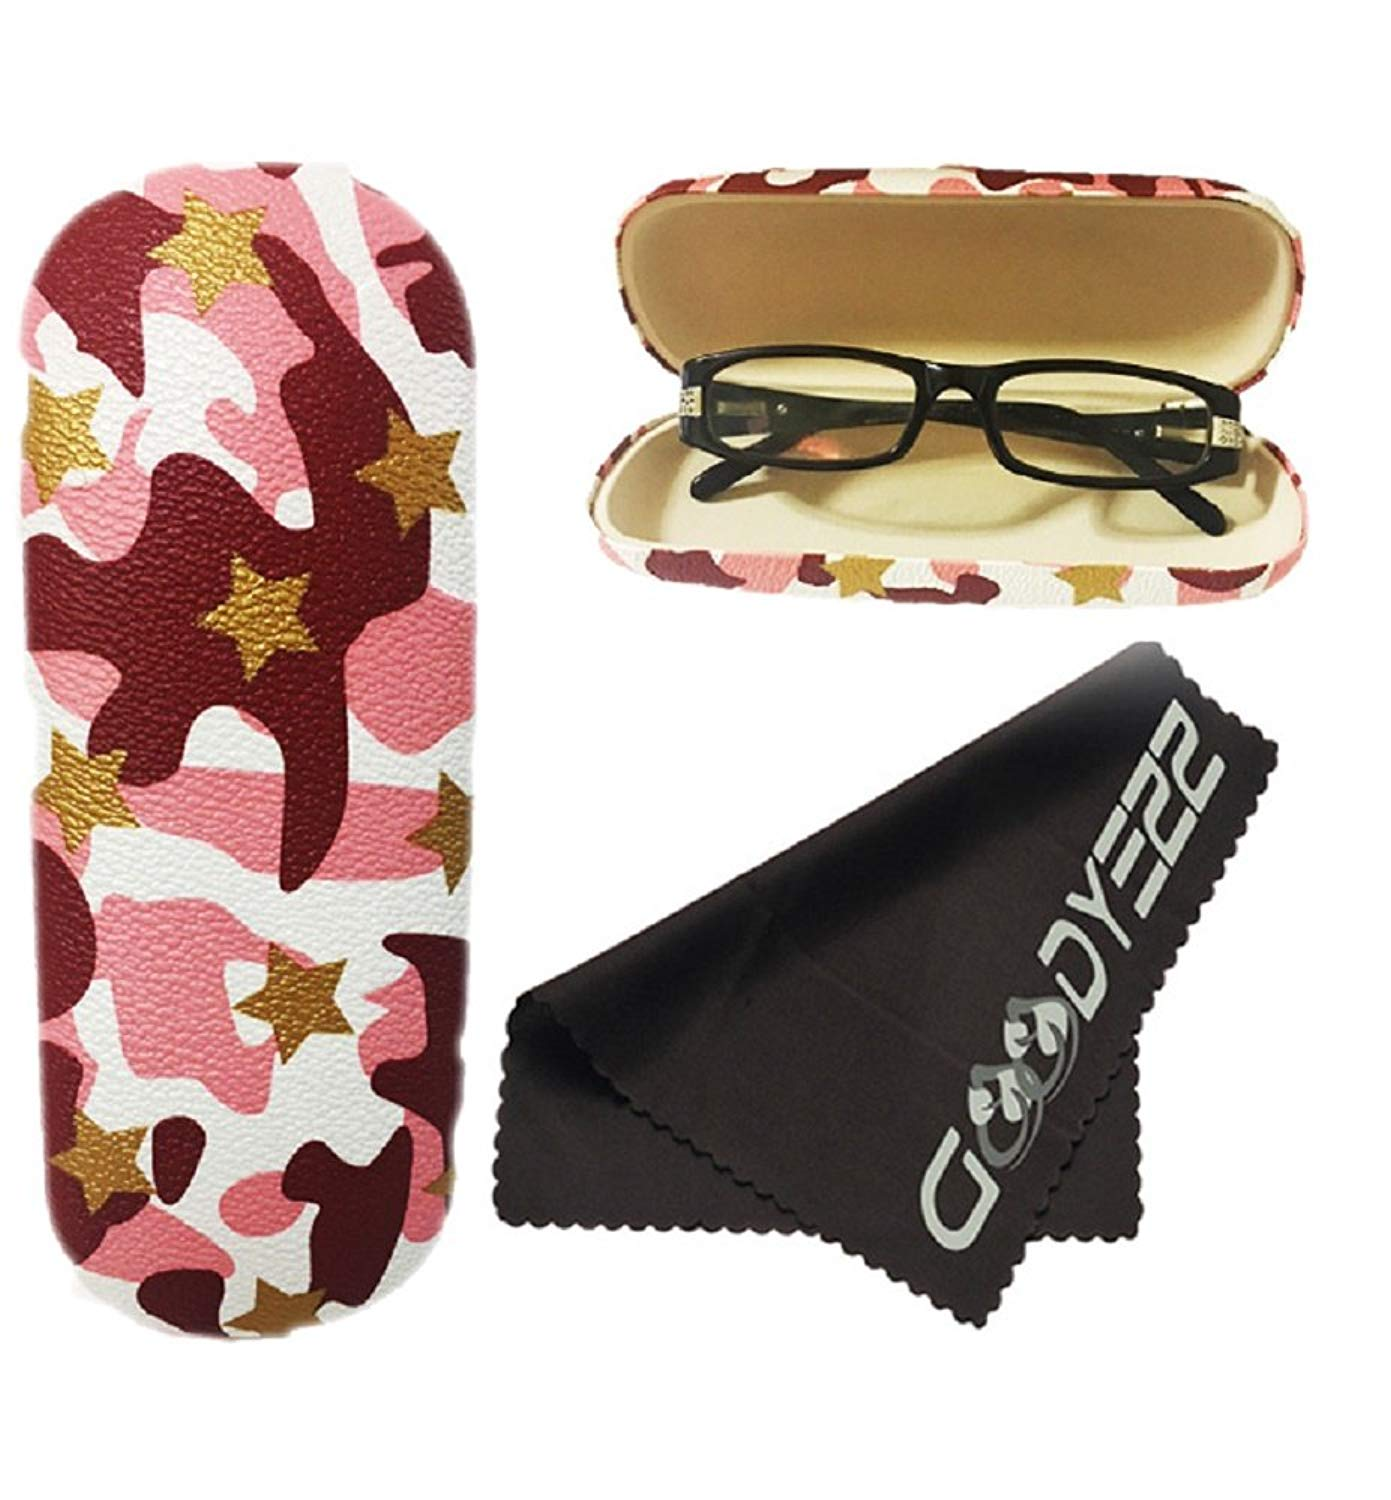 0c8ffe461bd Get Quotations · Clamshell Hard Shell Glasses Case - Durable Protective  Holder for Eyeglasses